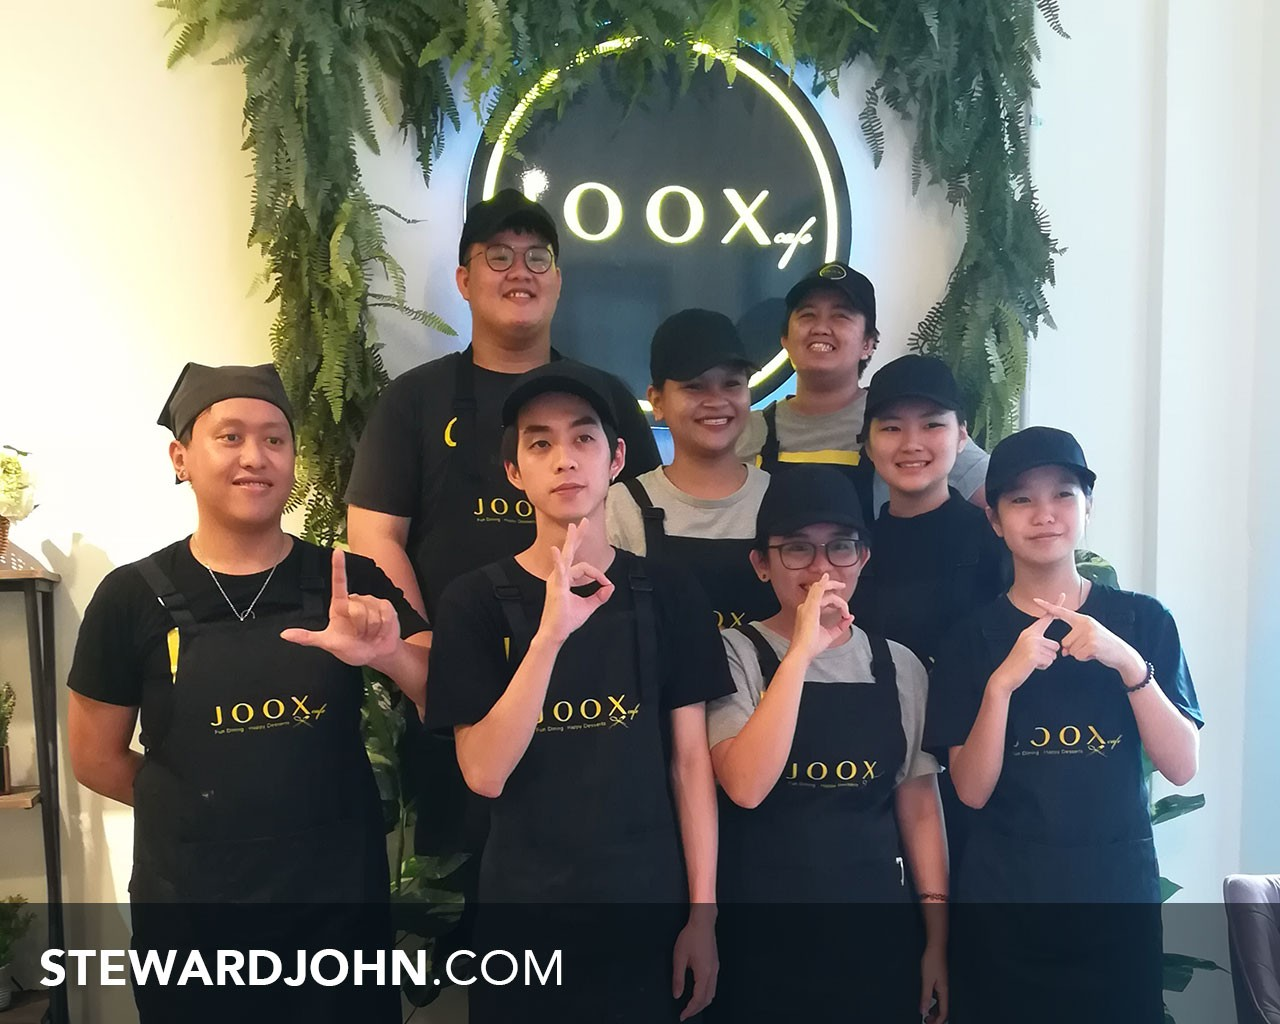 Joox Cafe's dedicated staffs. Ready to serve you with big smile